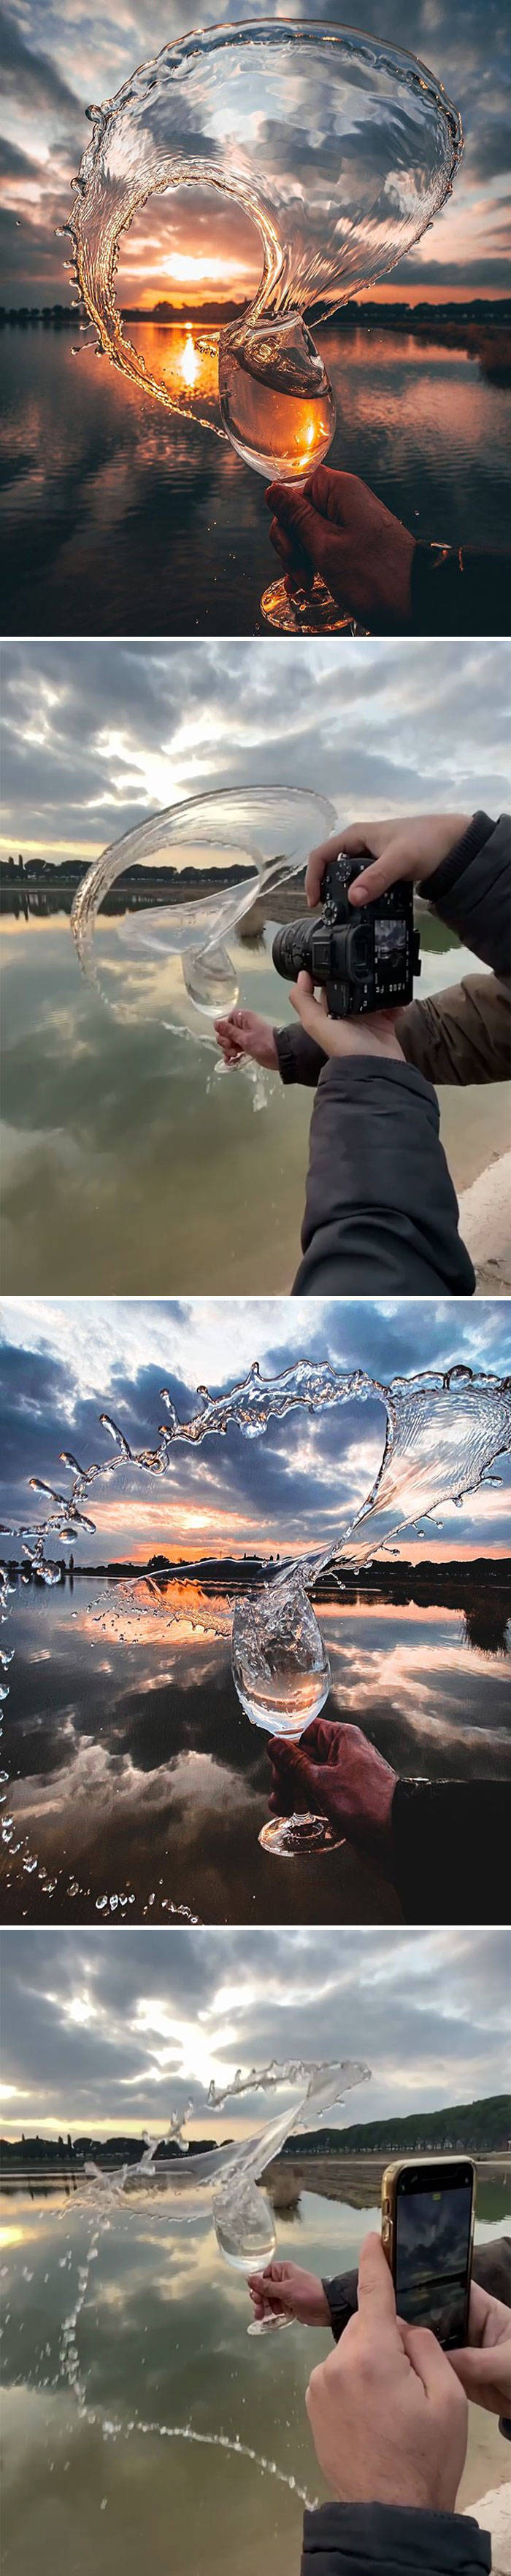 Reality Behind Creative Artistic Photos